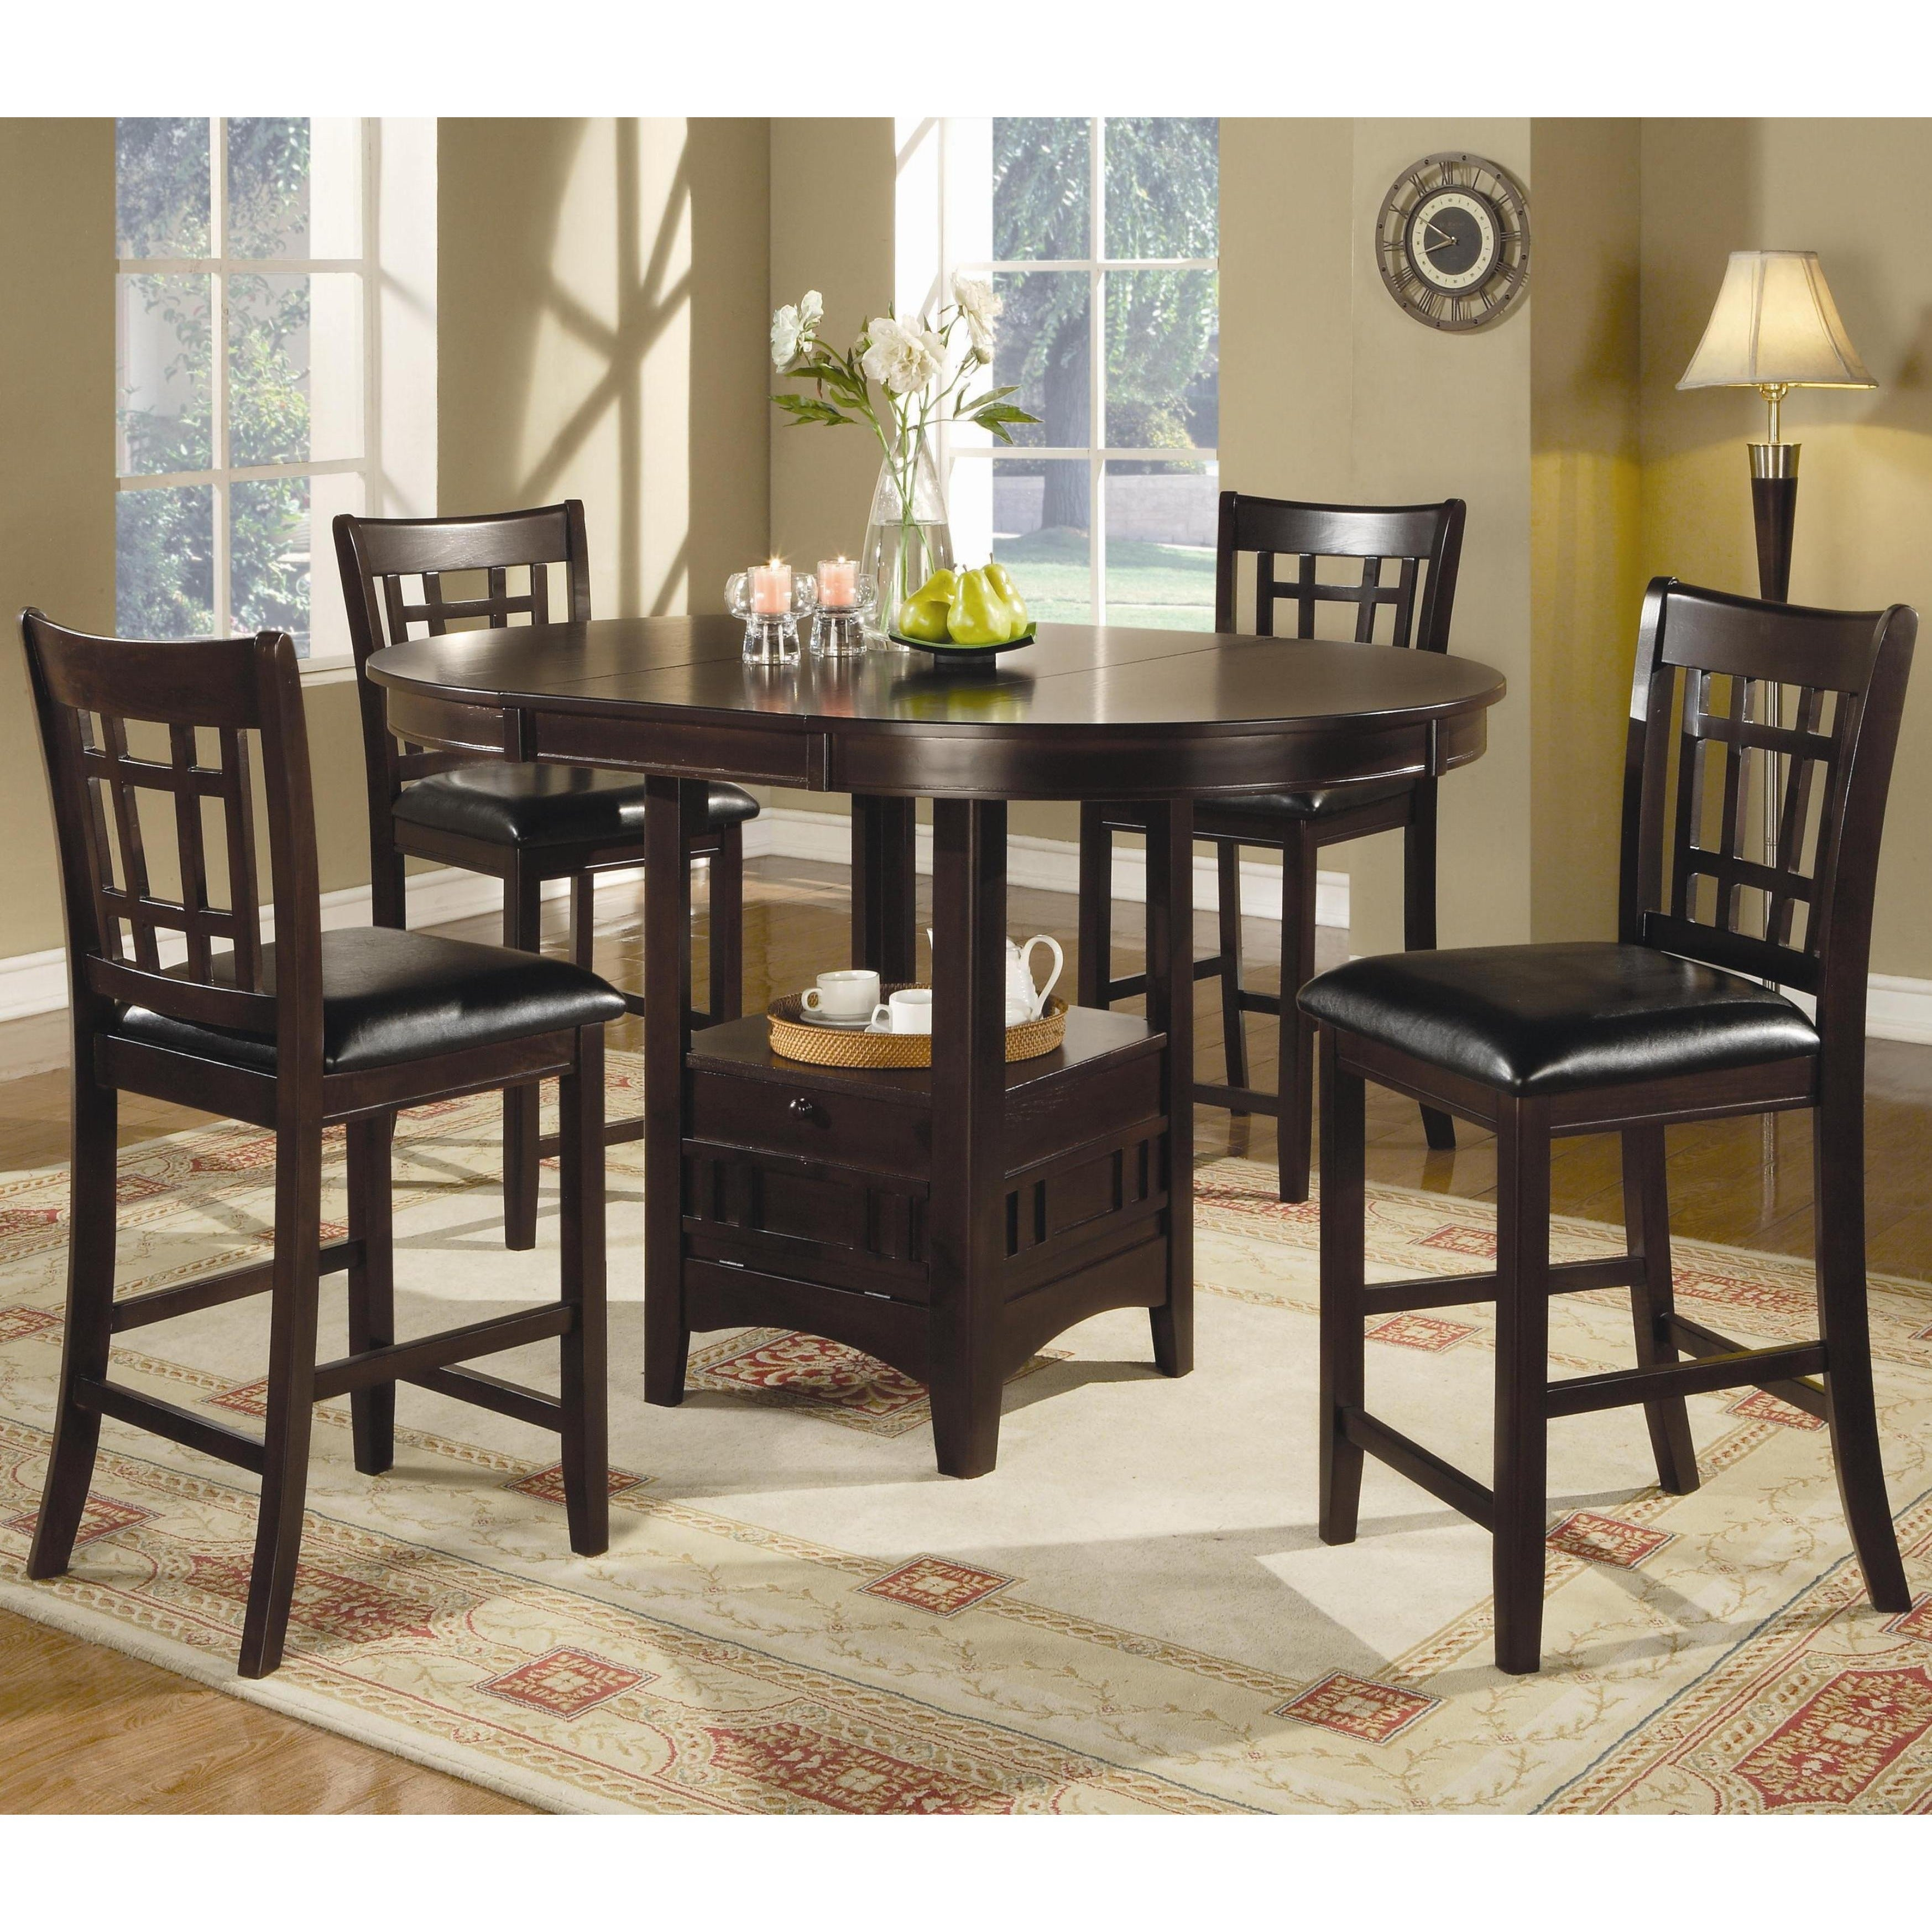 Quince Counter Height Espresso Dining Set (1 Table 4 Stoo...